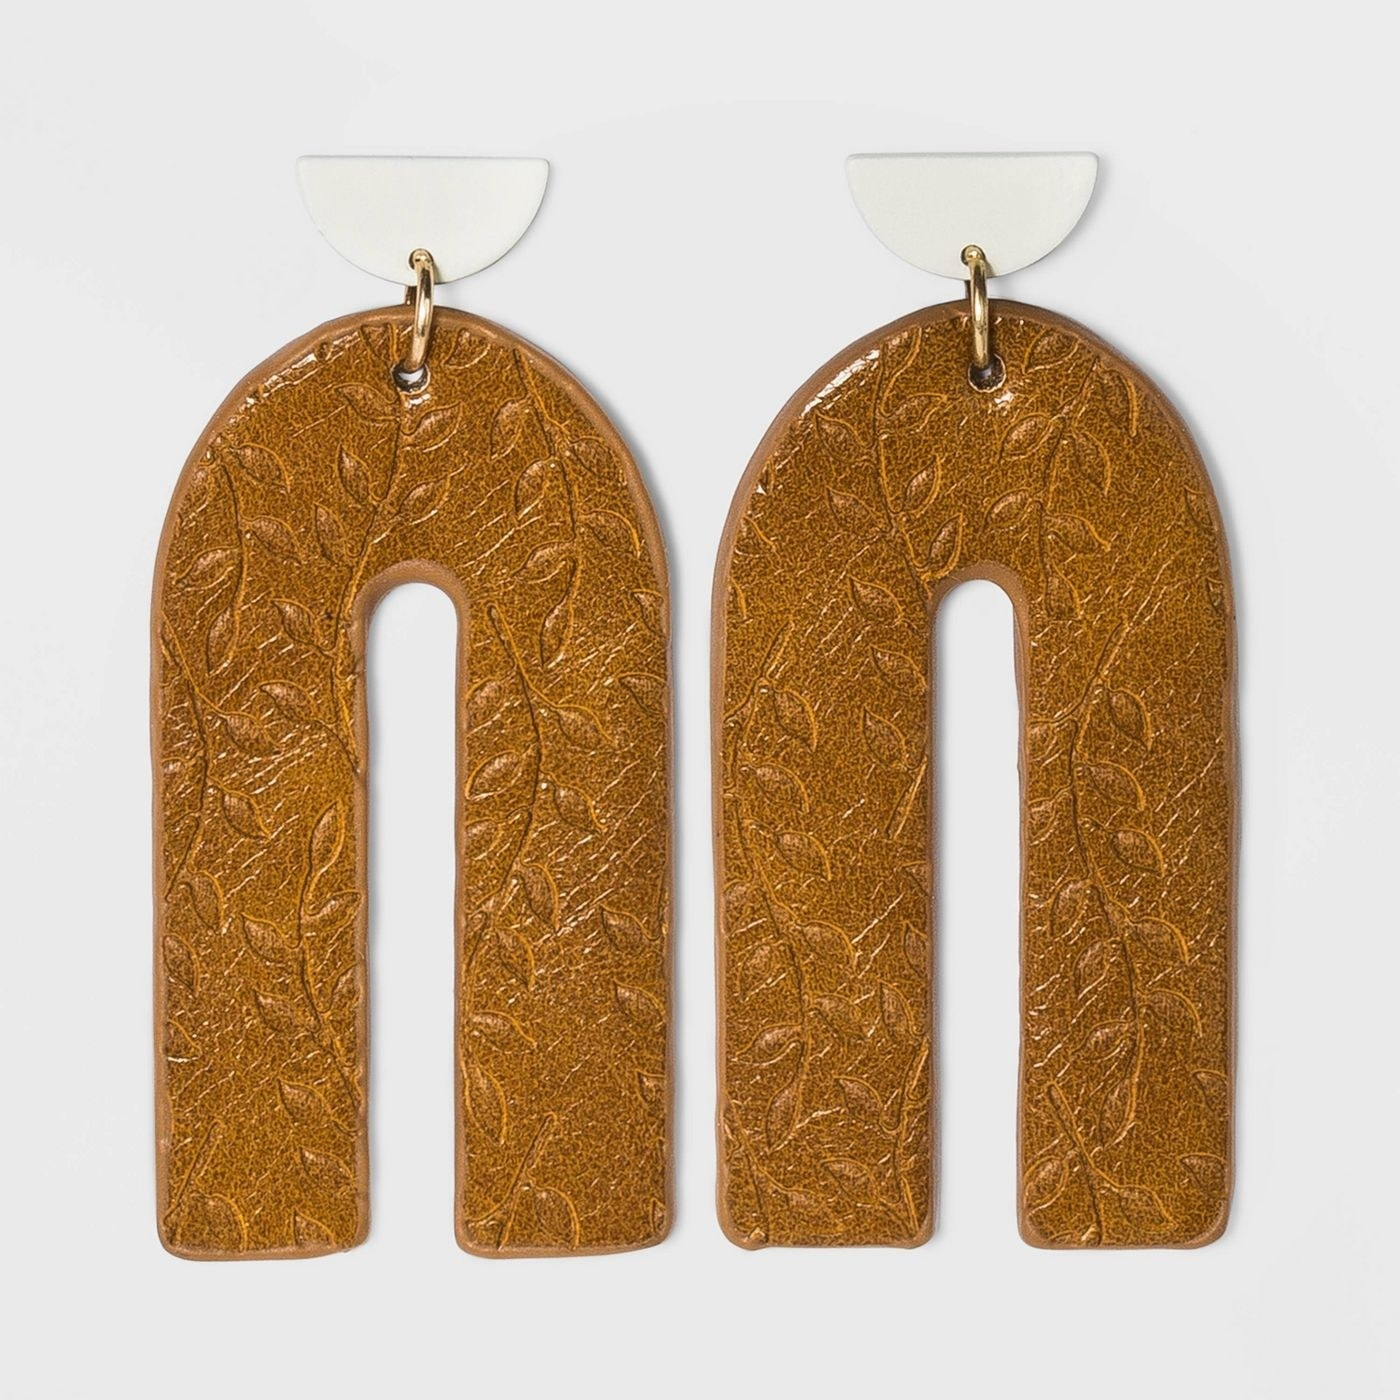 gold embossed u-shaped earrings with white half circle at the top